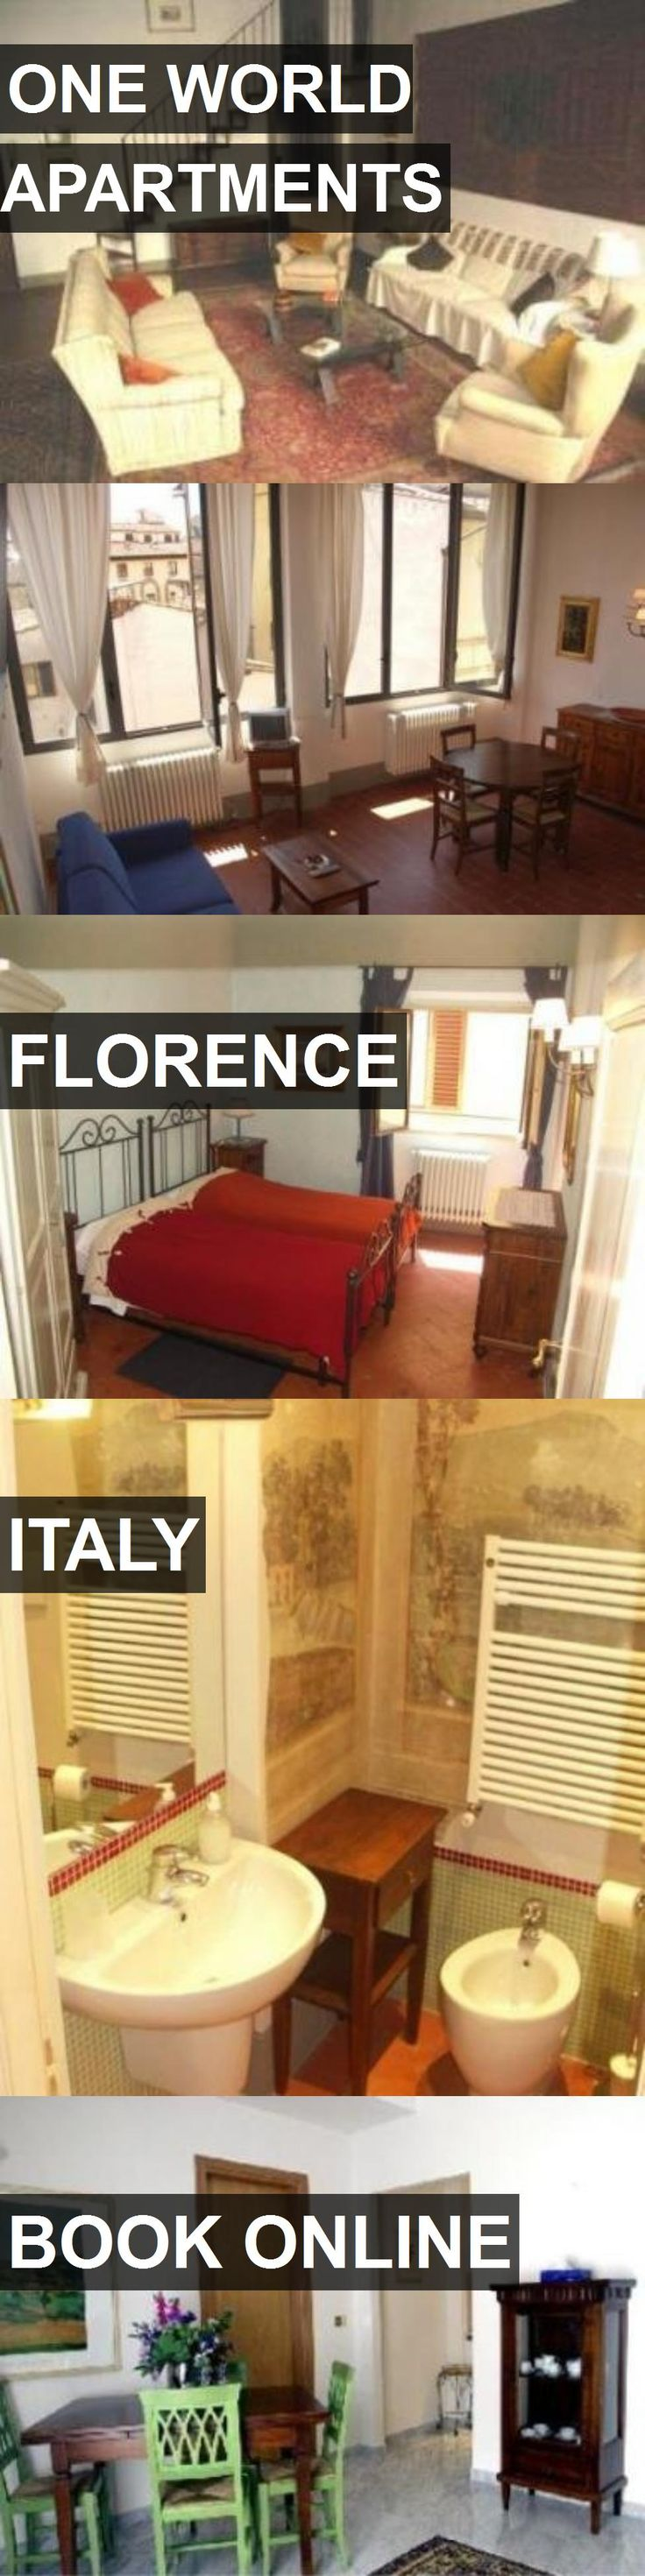 ONE WORLD APARTMENTS in Florence, Italy. For more information, photos, reviews and best prices please follow the link. #Italy #Florence #travel #vacation #apartment